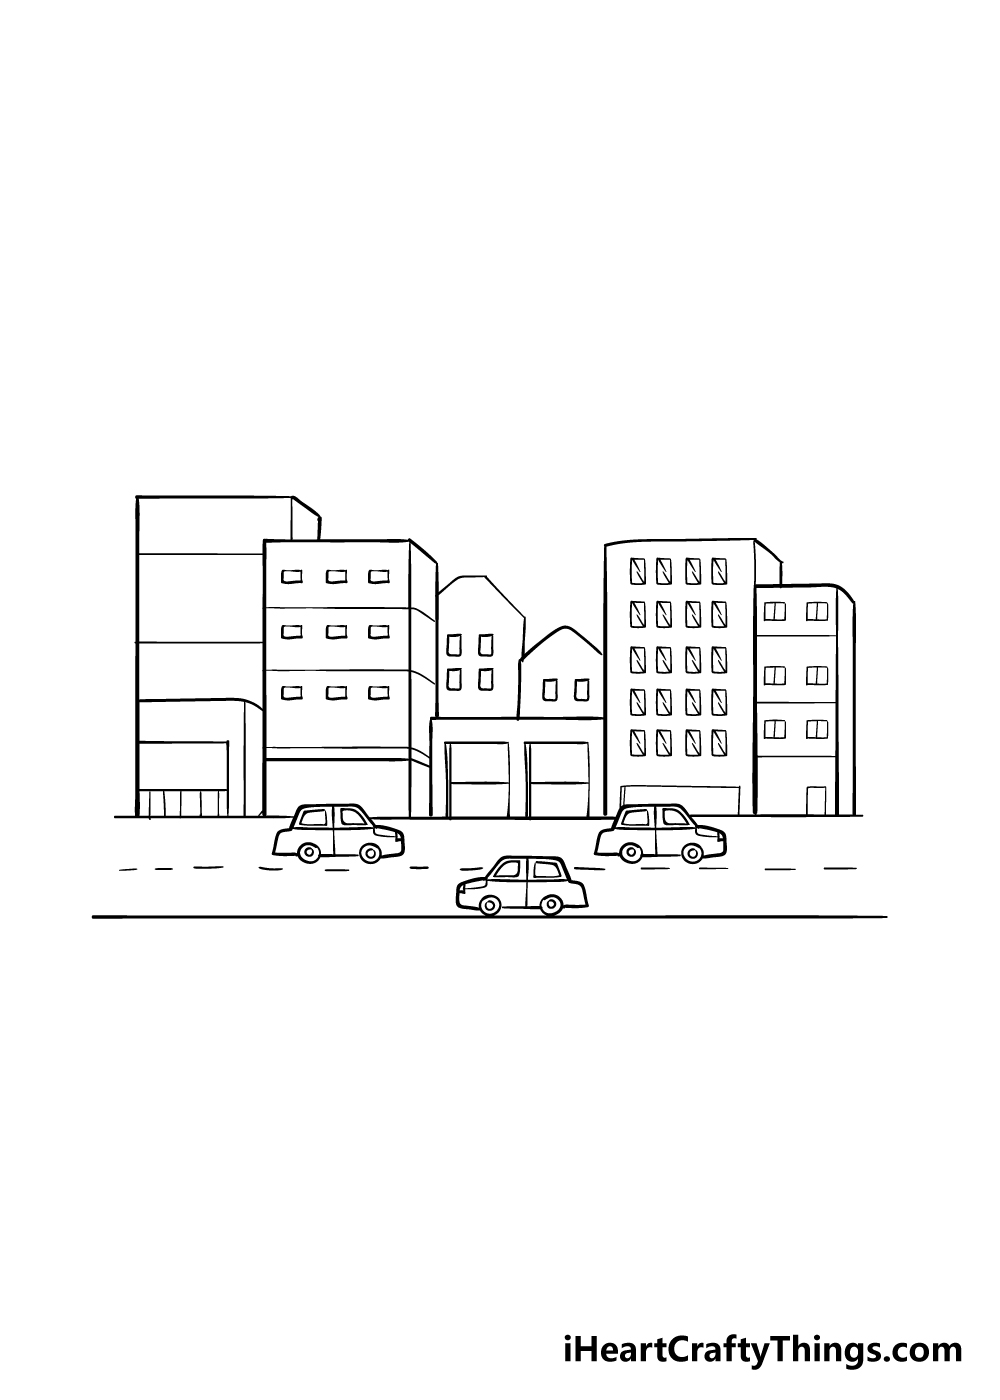 drawing a city step 6